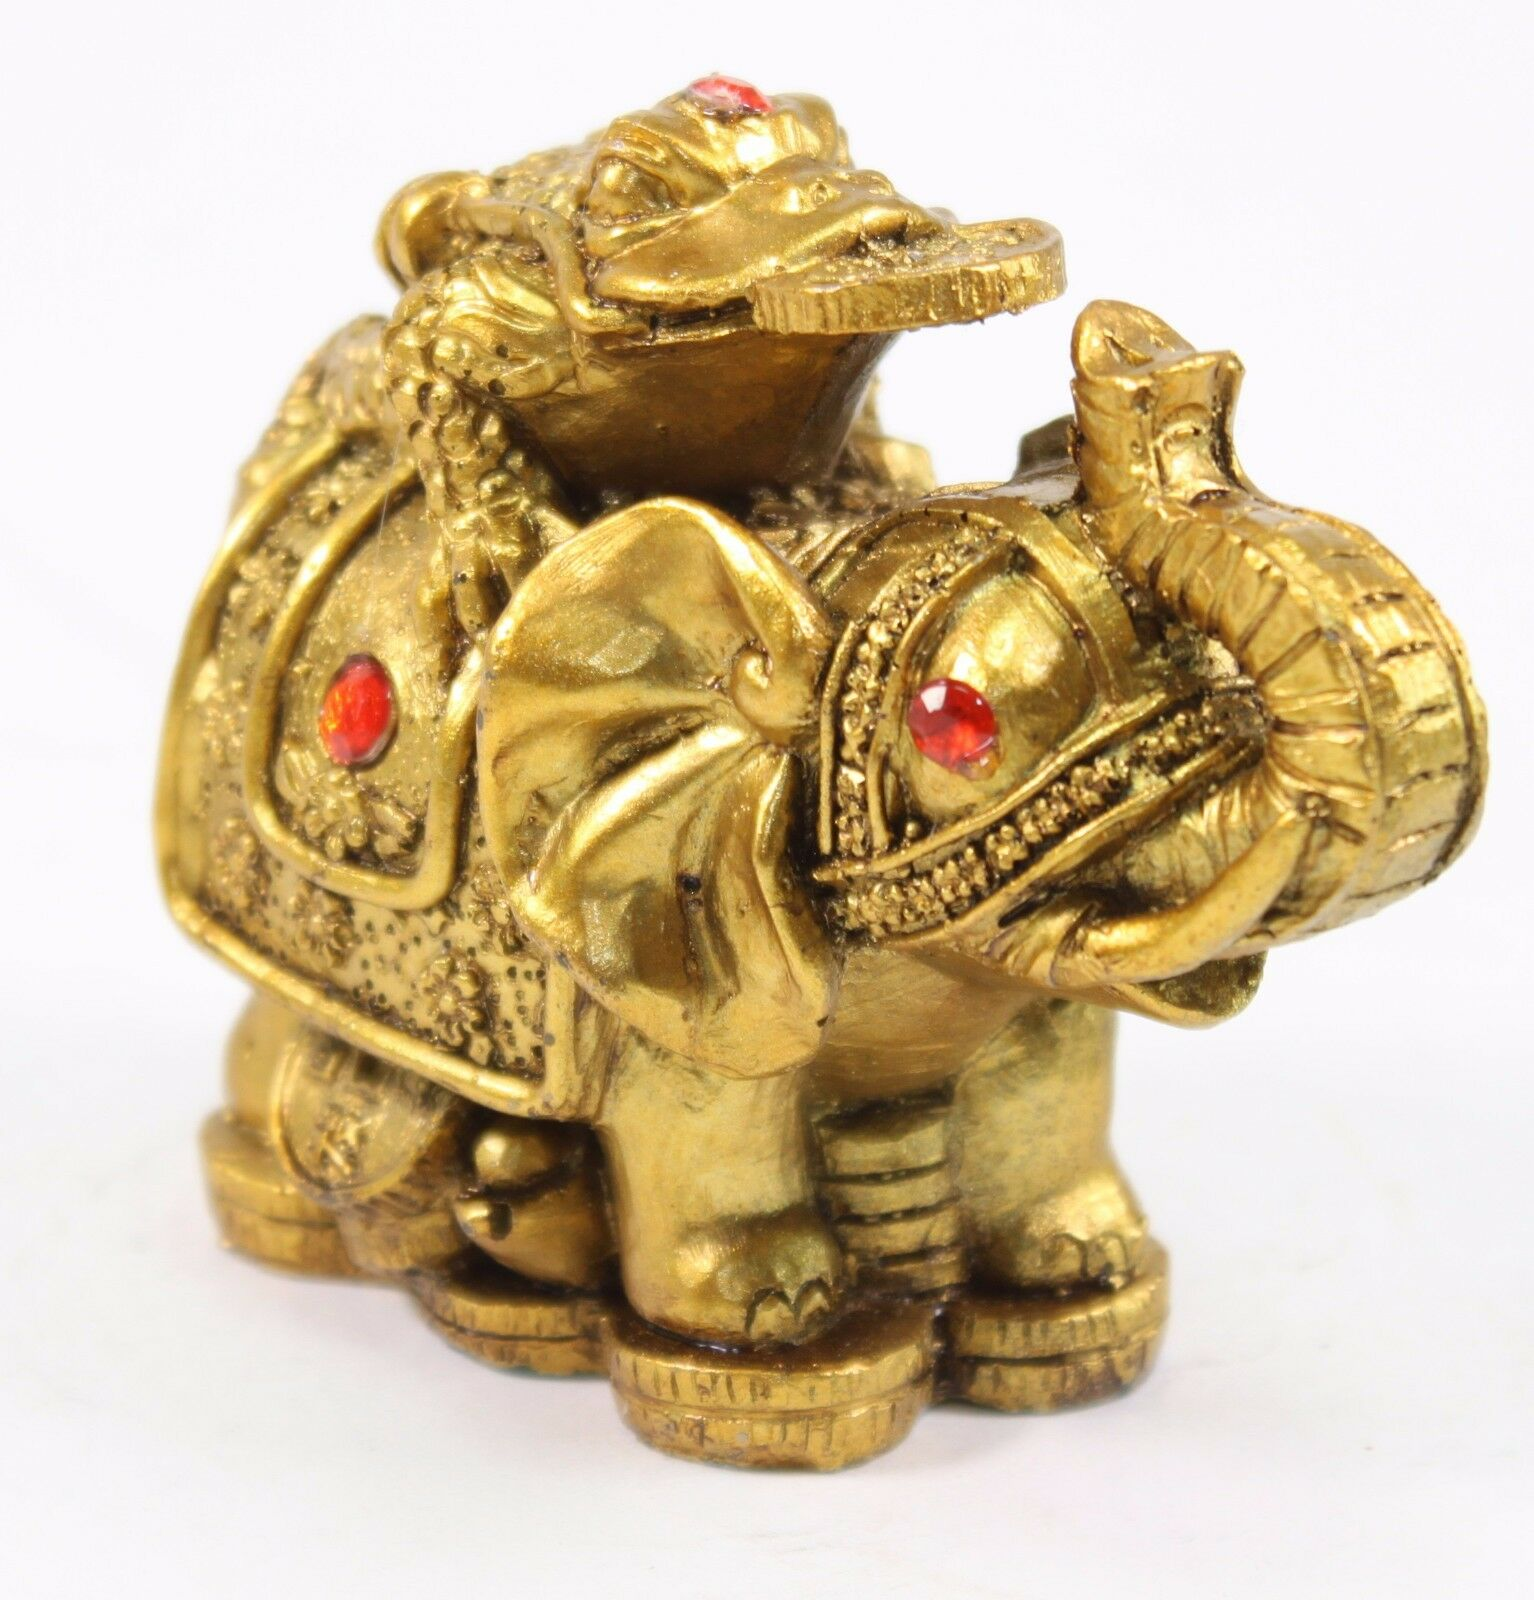 feng shui 3 money frog on elephant figurine wealth figurine gift home decor ebay. Black Bedroom Furniture Sets. Home Design Ideas